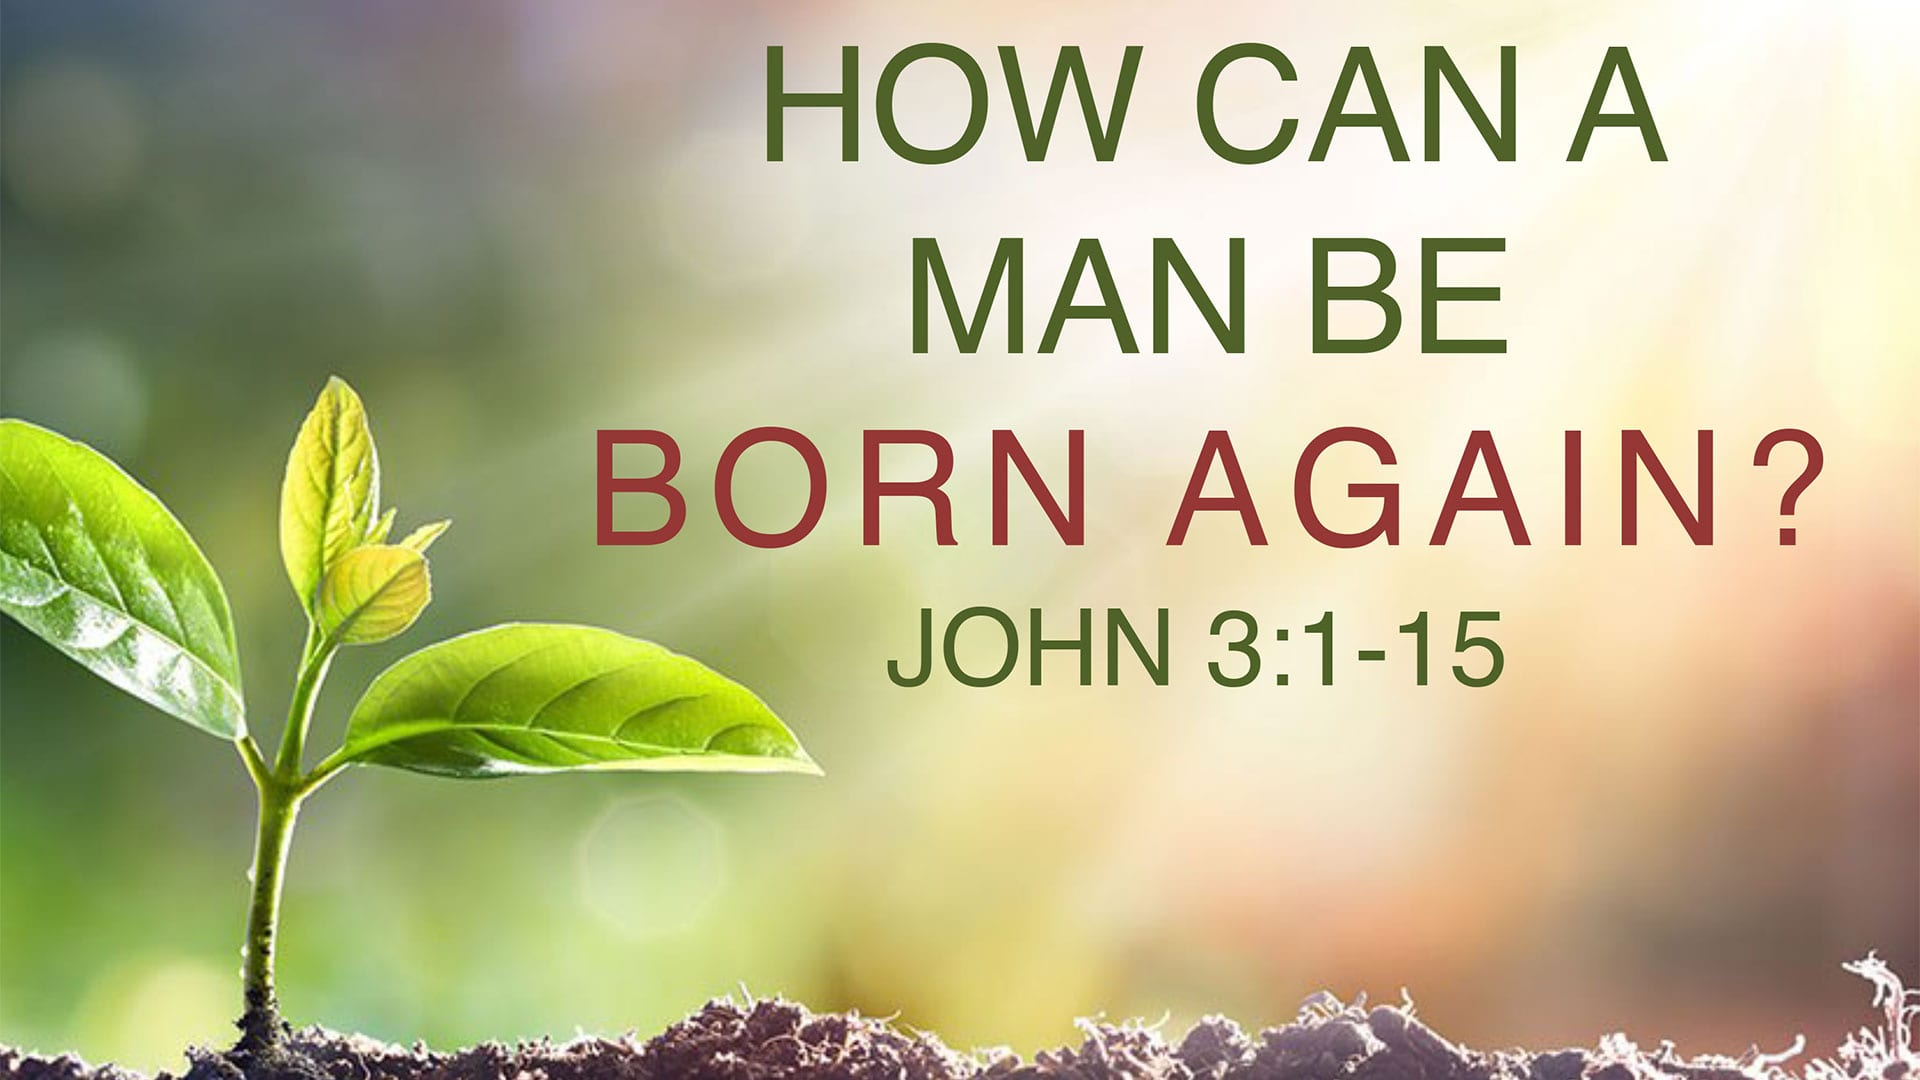 CBC_2020_12_06_AM_how_can_a_man_be_born_again_Outline_Thumbnail_1920x1080